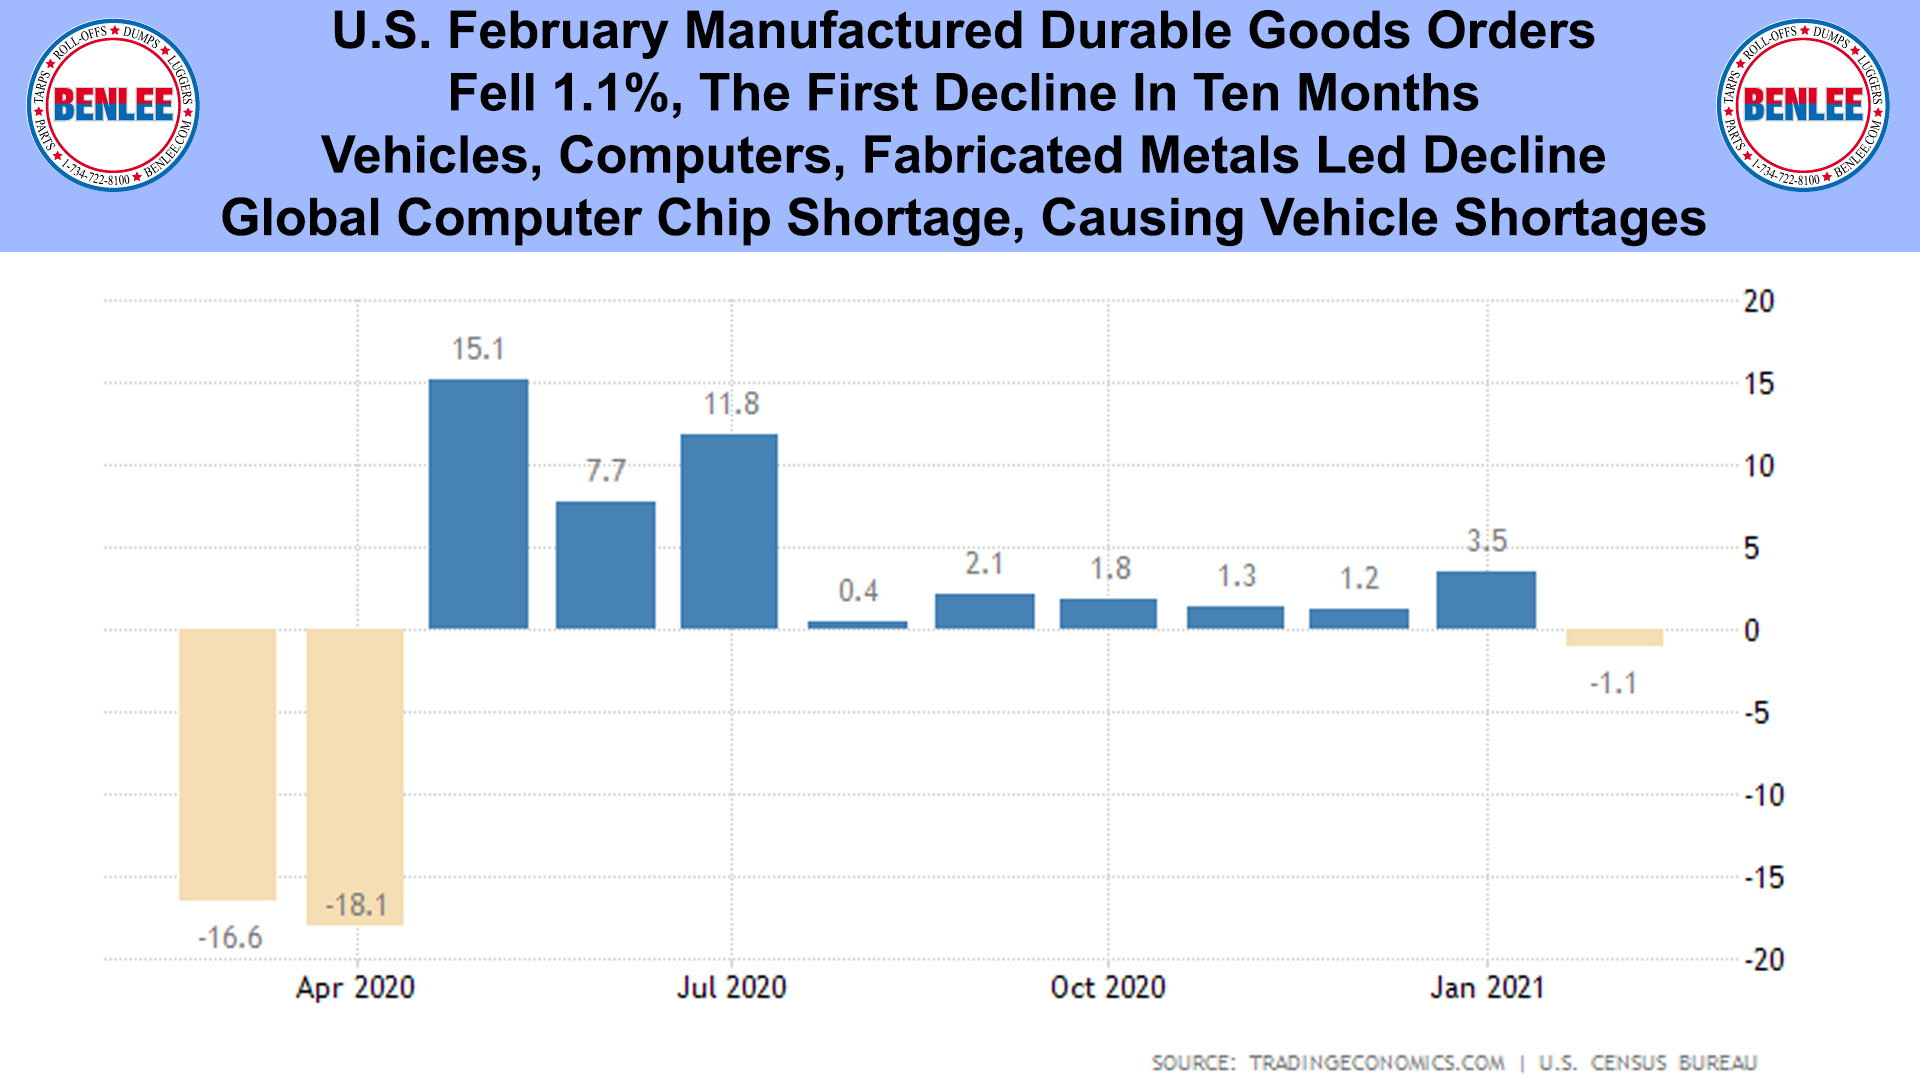 U.S. February Manufactured Durable Goods Orders